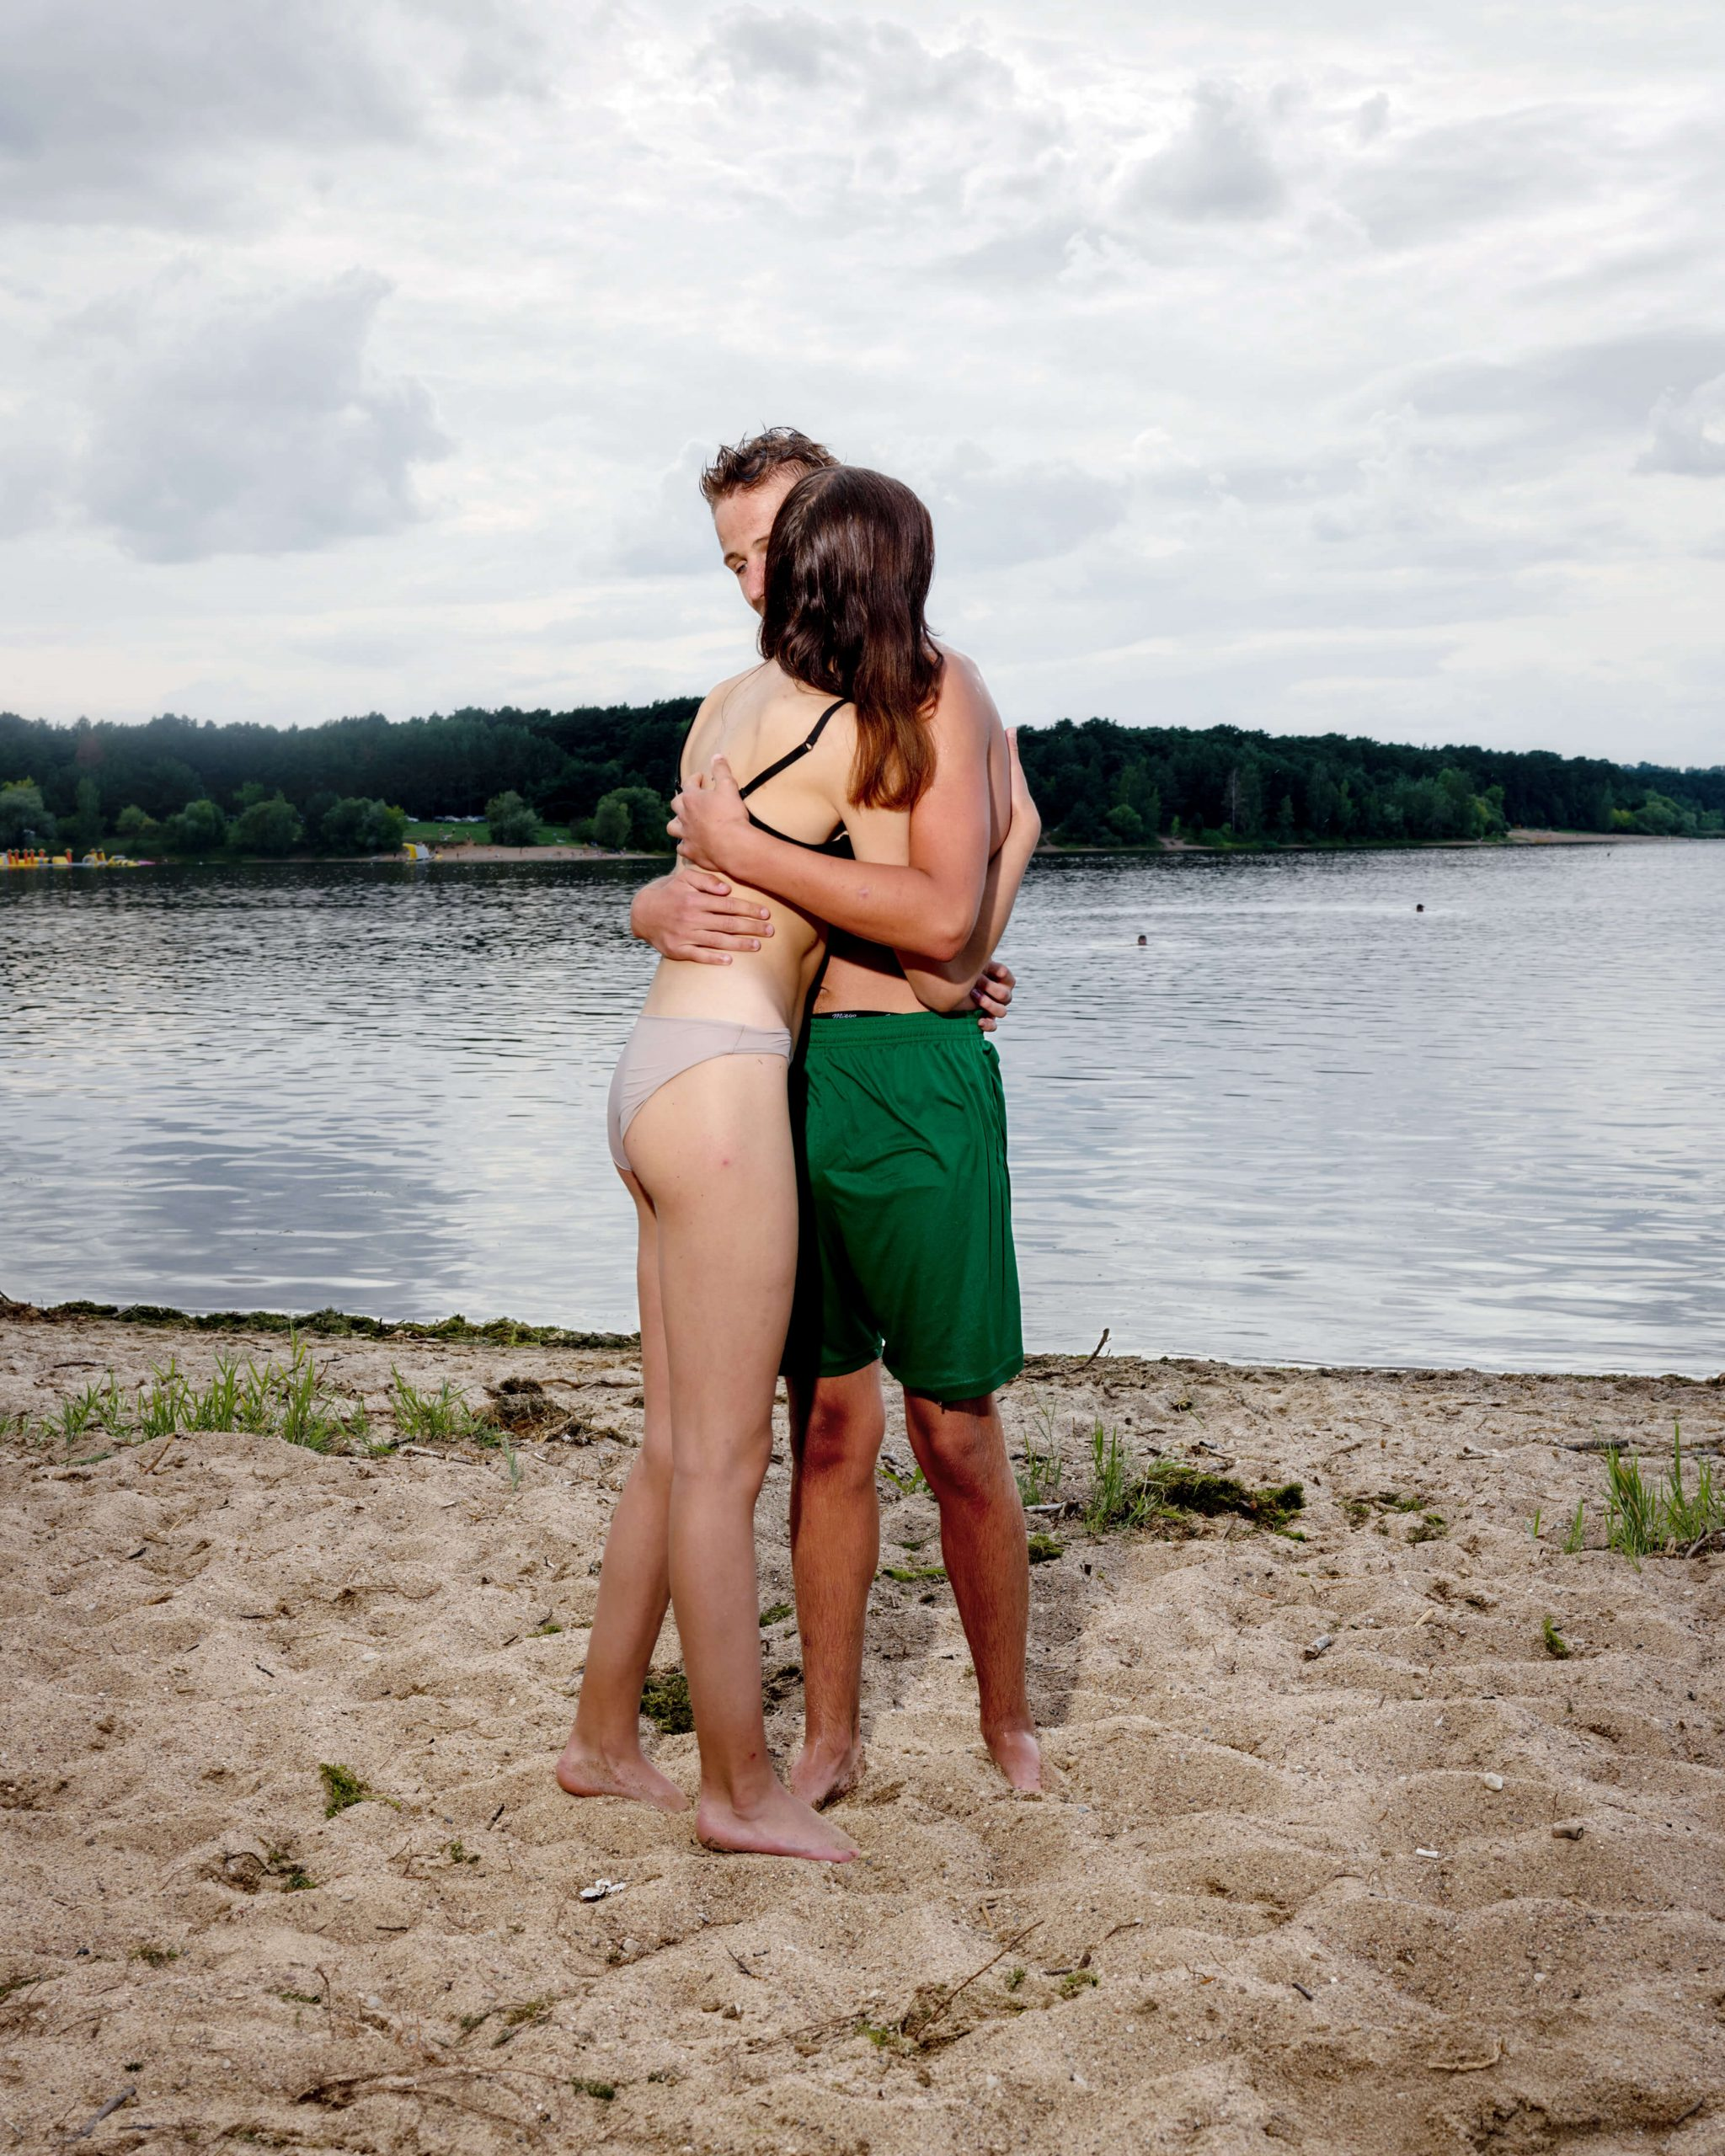 THE EUROPEANS -Arnold van Bruggen & Rob Hornstra the south west collective of photography couple hugging on a beach